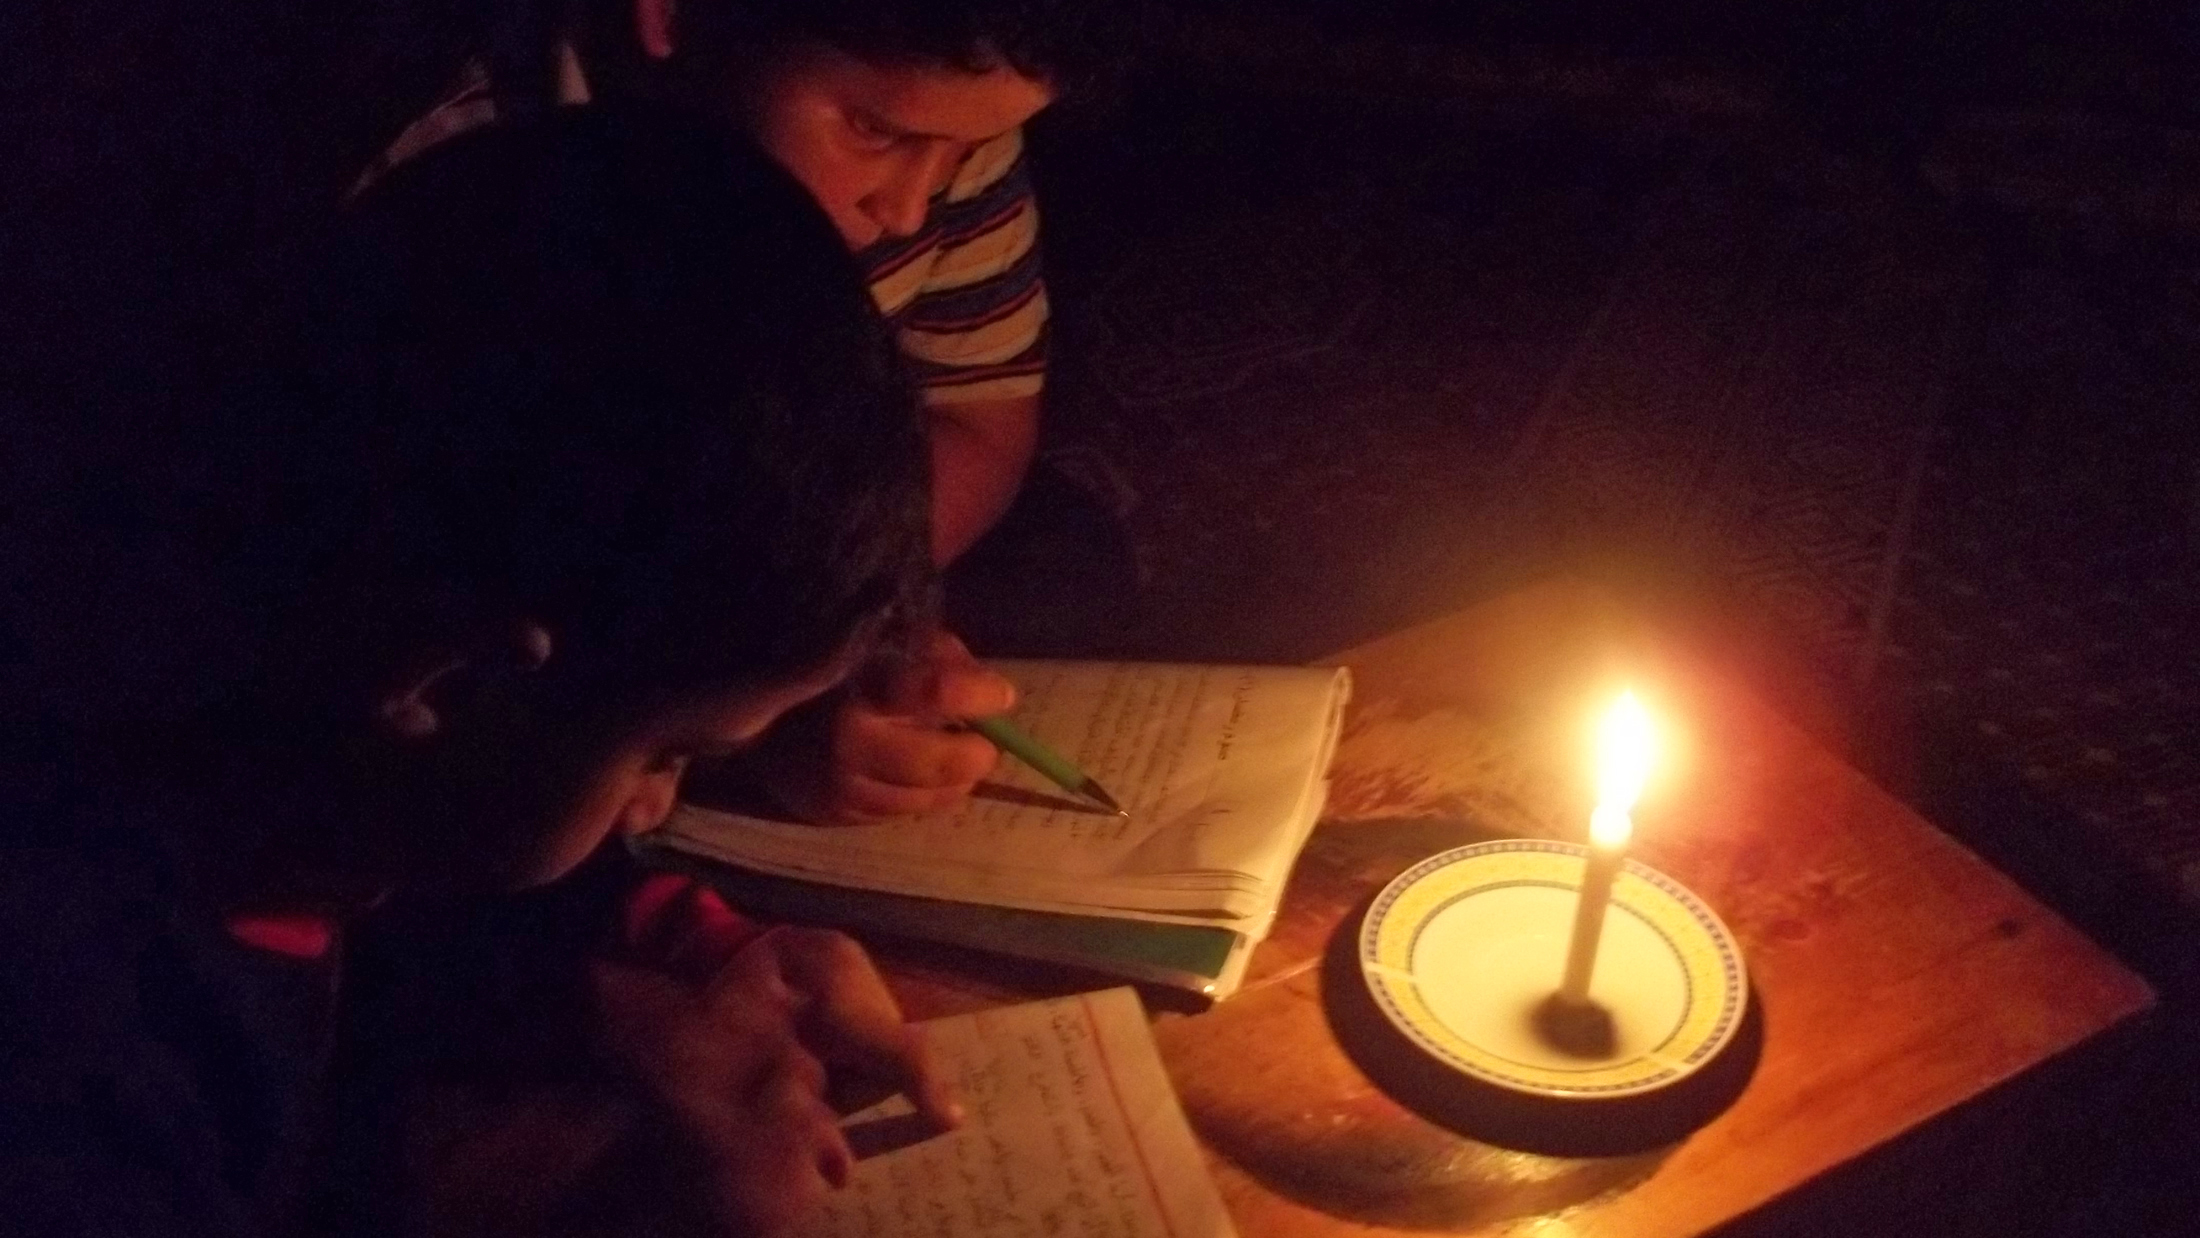 Yusri and his brother find it very exhausting to read with candle light